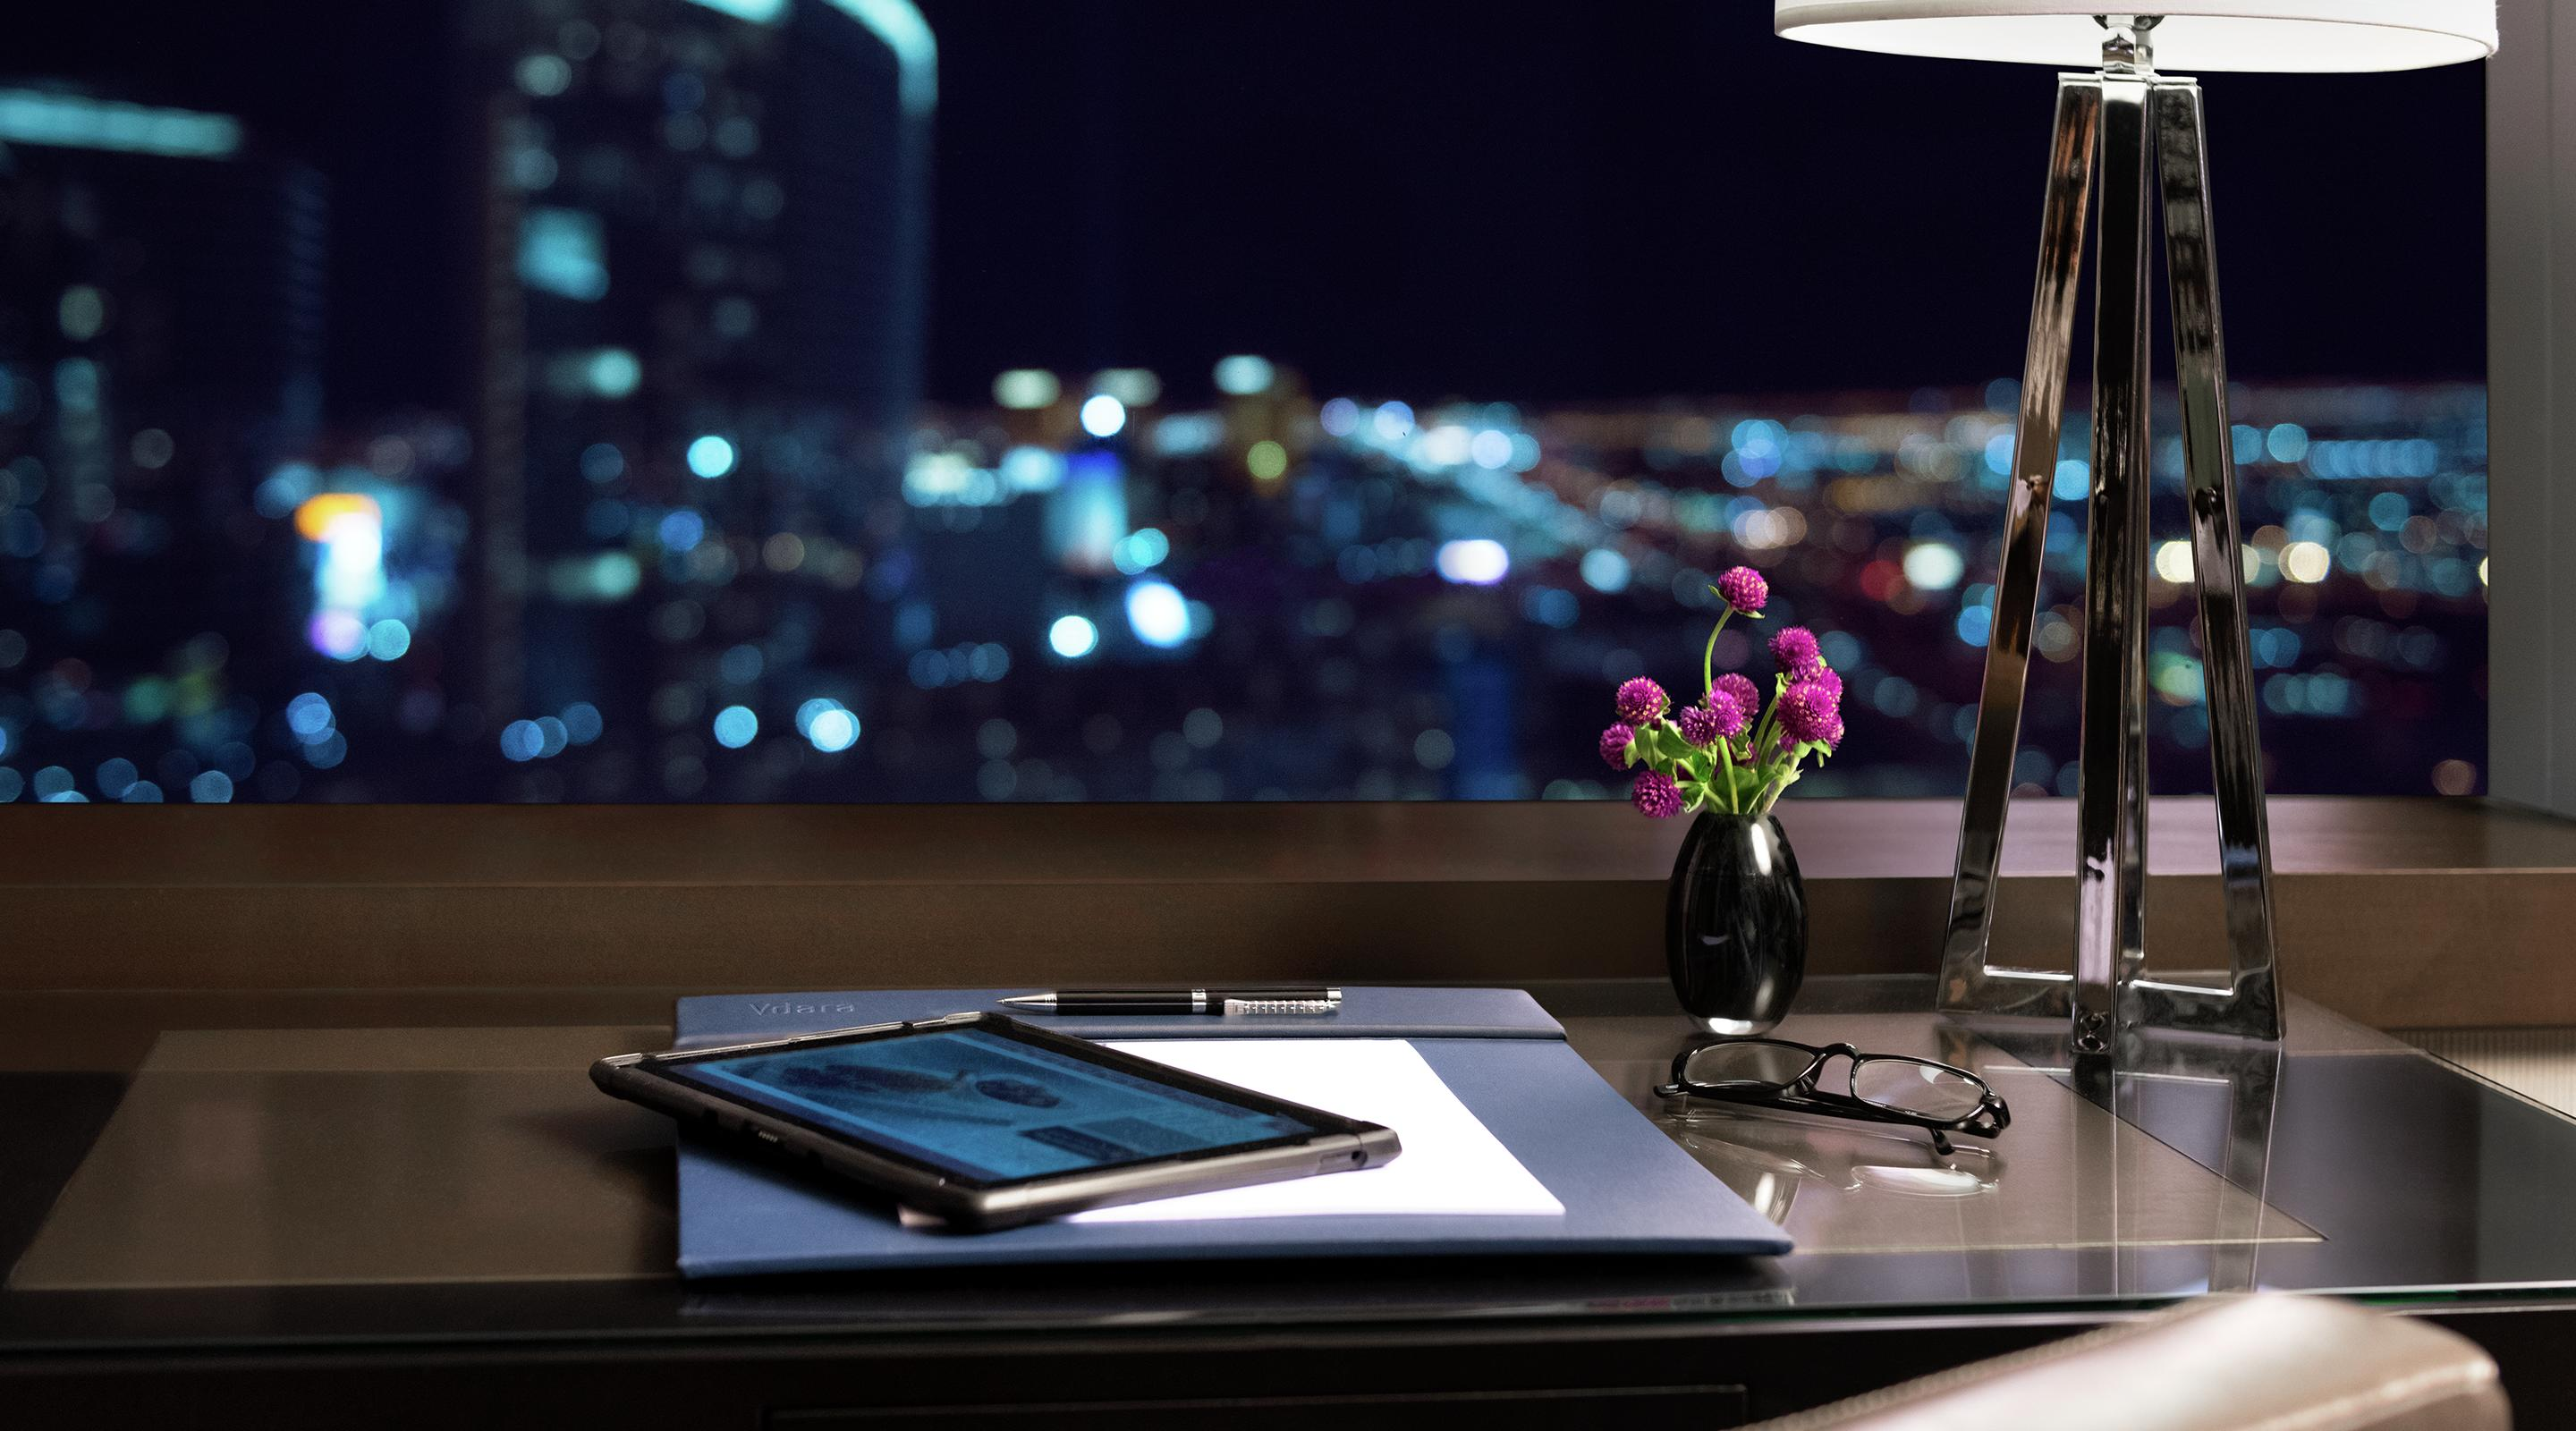 Whether it's work or play, Vdara lets you experience Vegas that's uniquely your own.